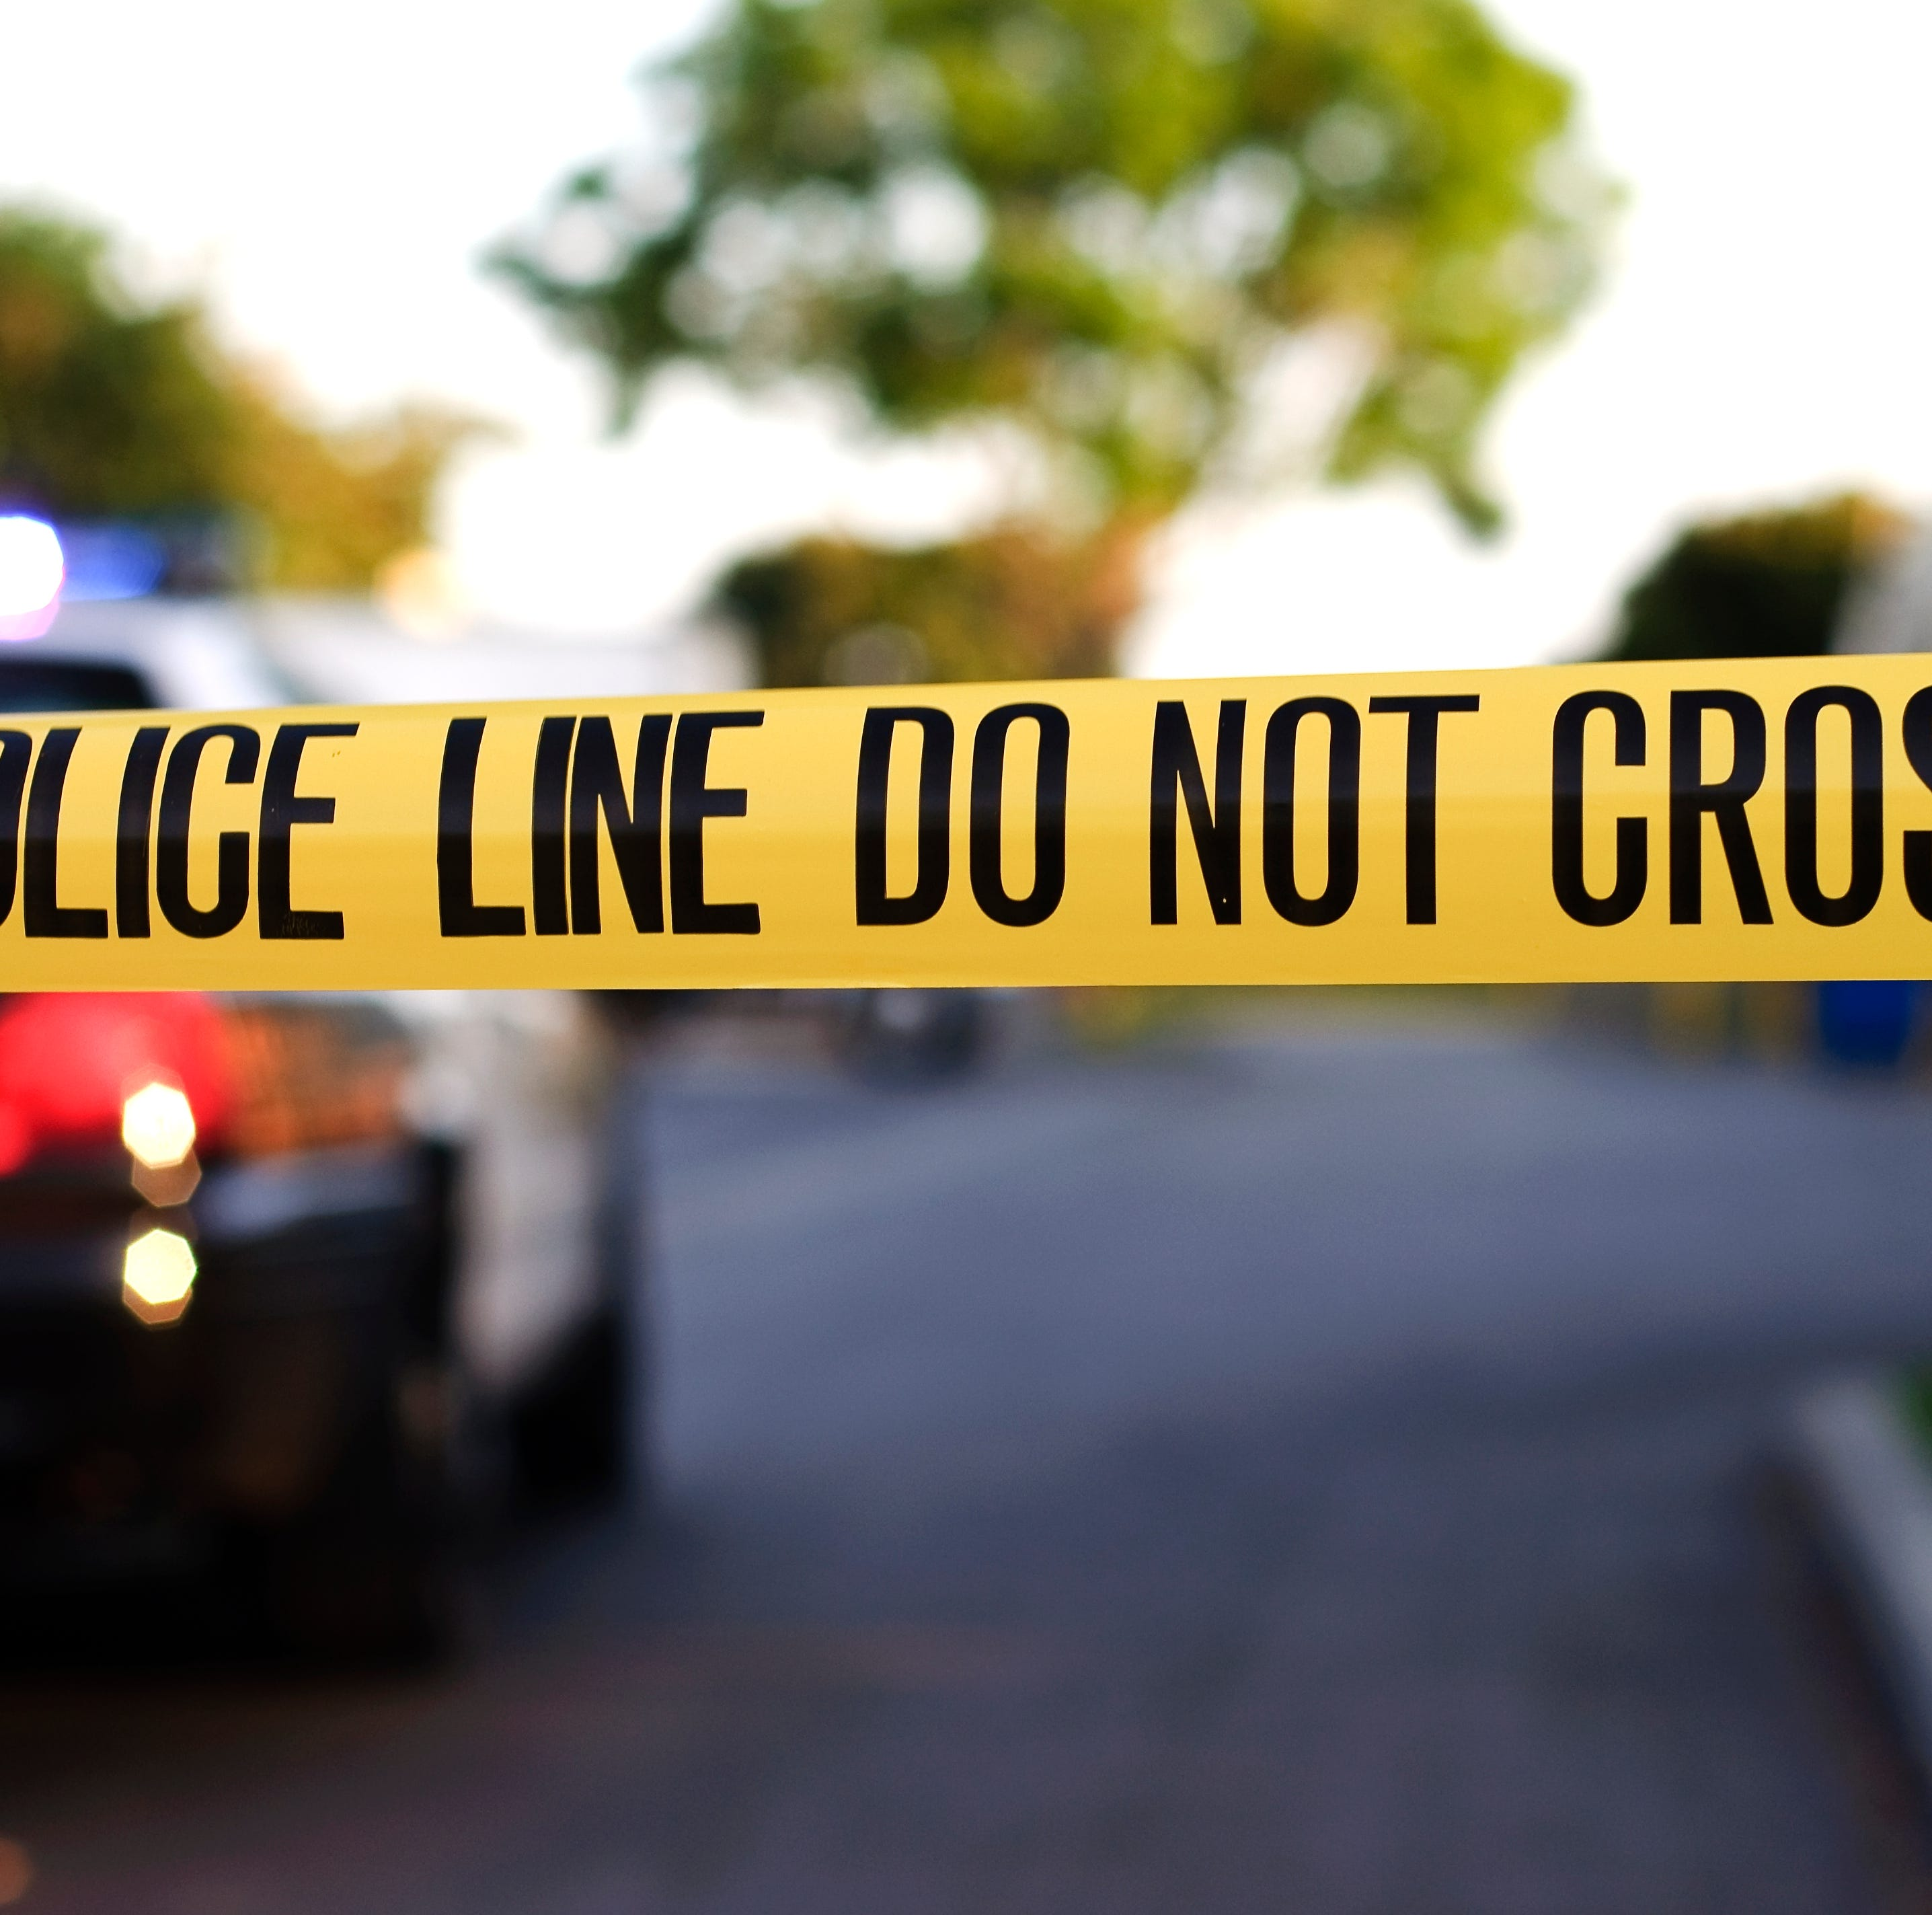 Travis L. Abston Jr., 15, Battle Ground, died Monday in Kokomo after a car crash. Abston stole a car in Battle Ground and fled two counties away before he crashed the car.